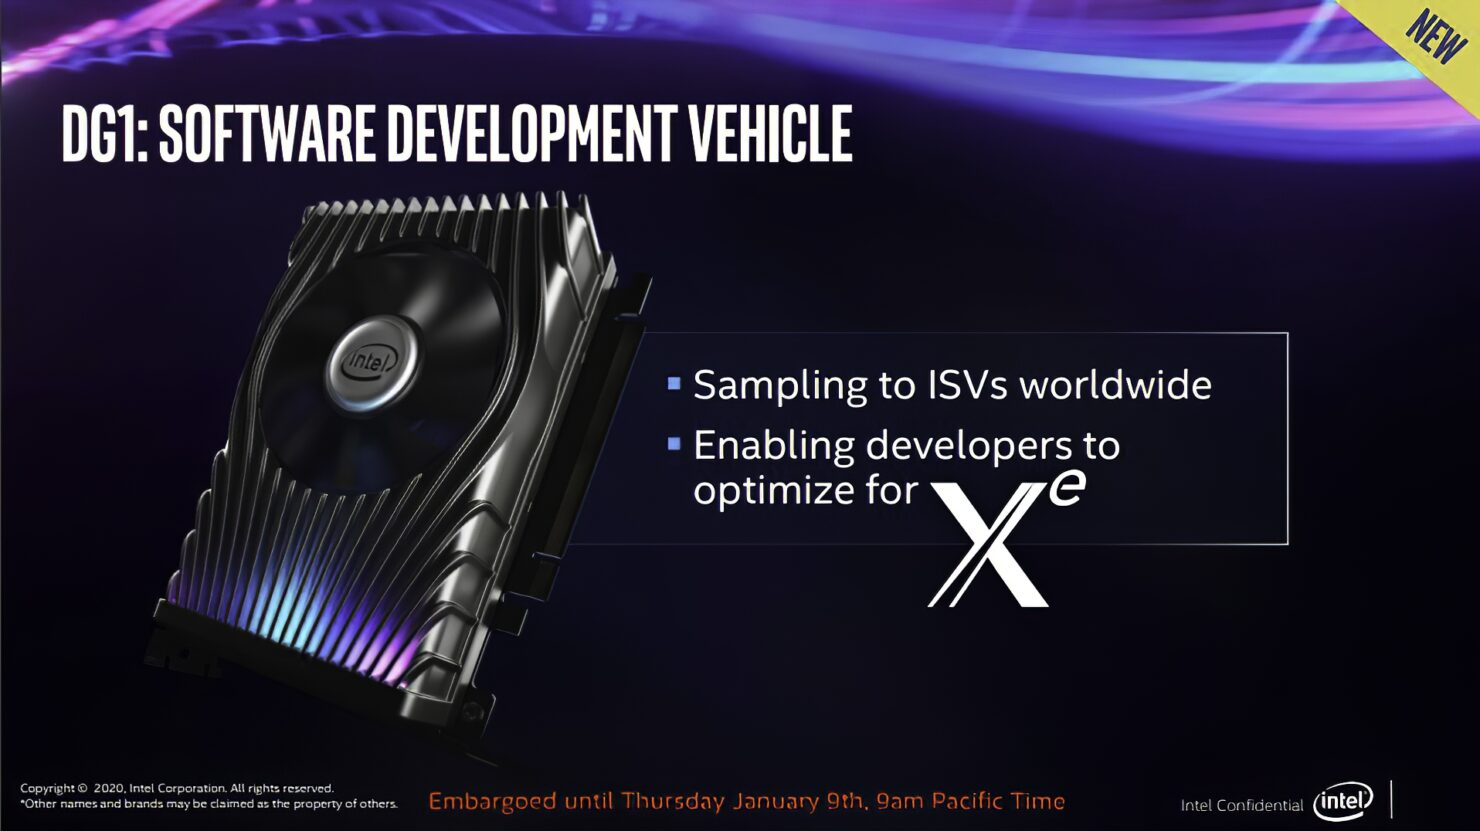 intel-dg1-gpu-discrete-graphics-card-powered-by-xe-graphics-architecture_7